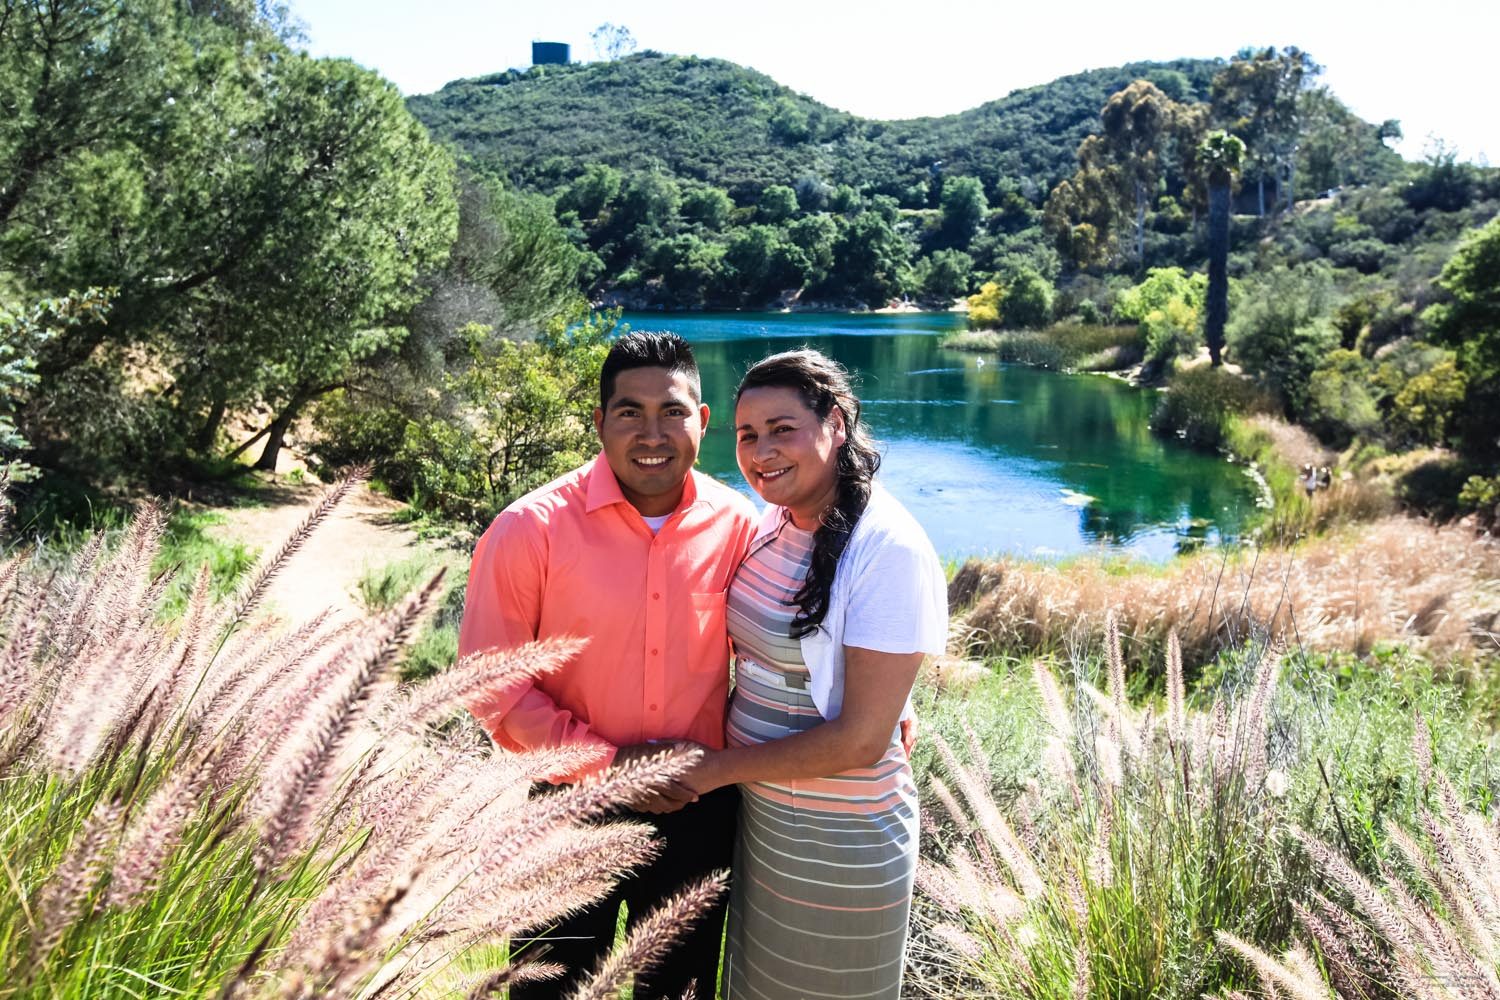 A Couple's Lakeside Escondido Engagement Photography near San Diego, California